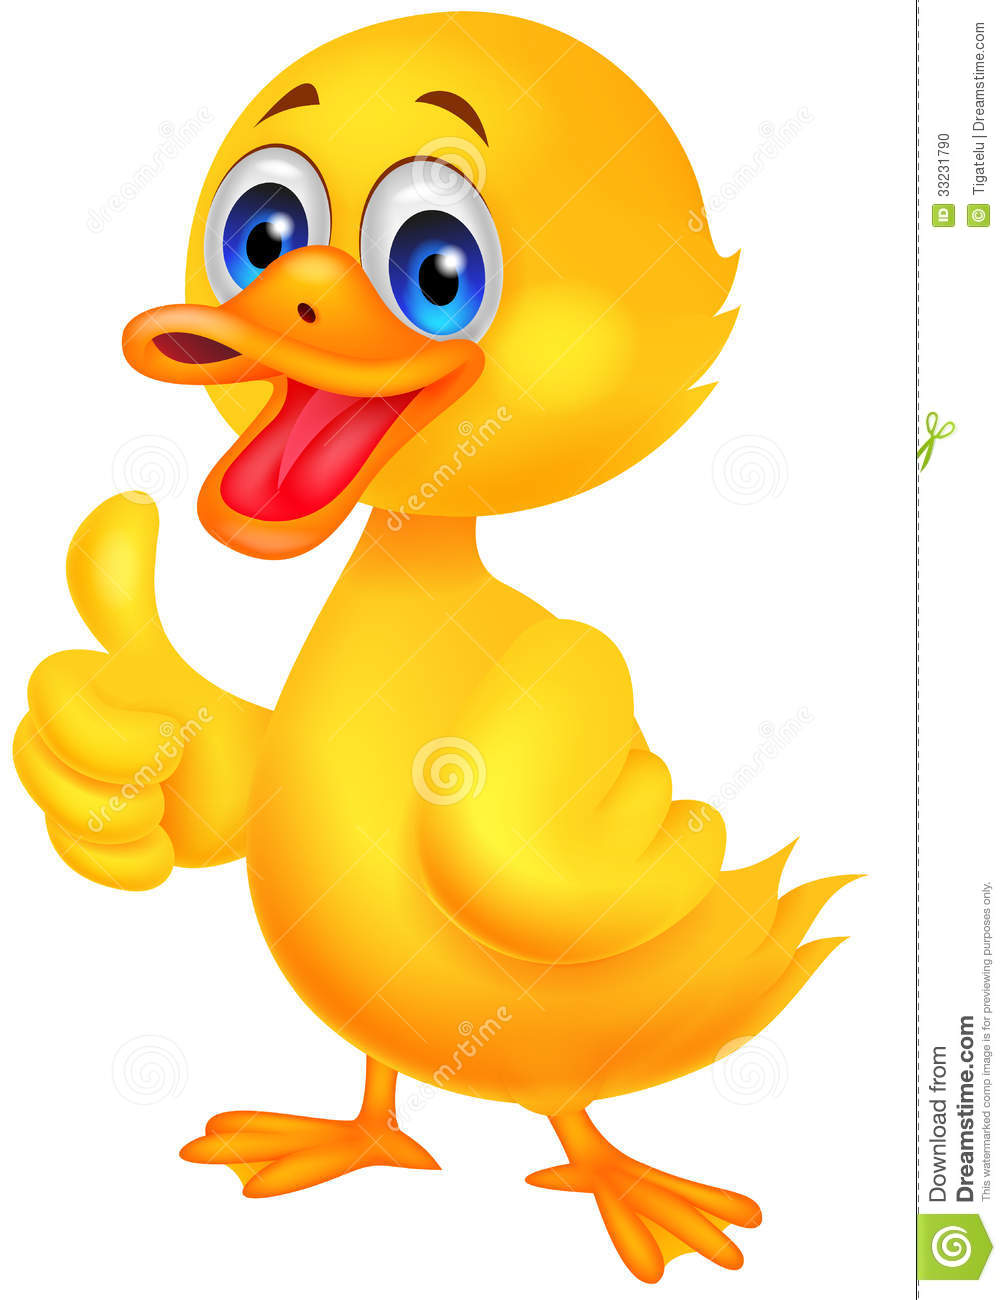 Duck cartoon images - photo#17